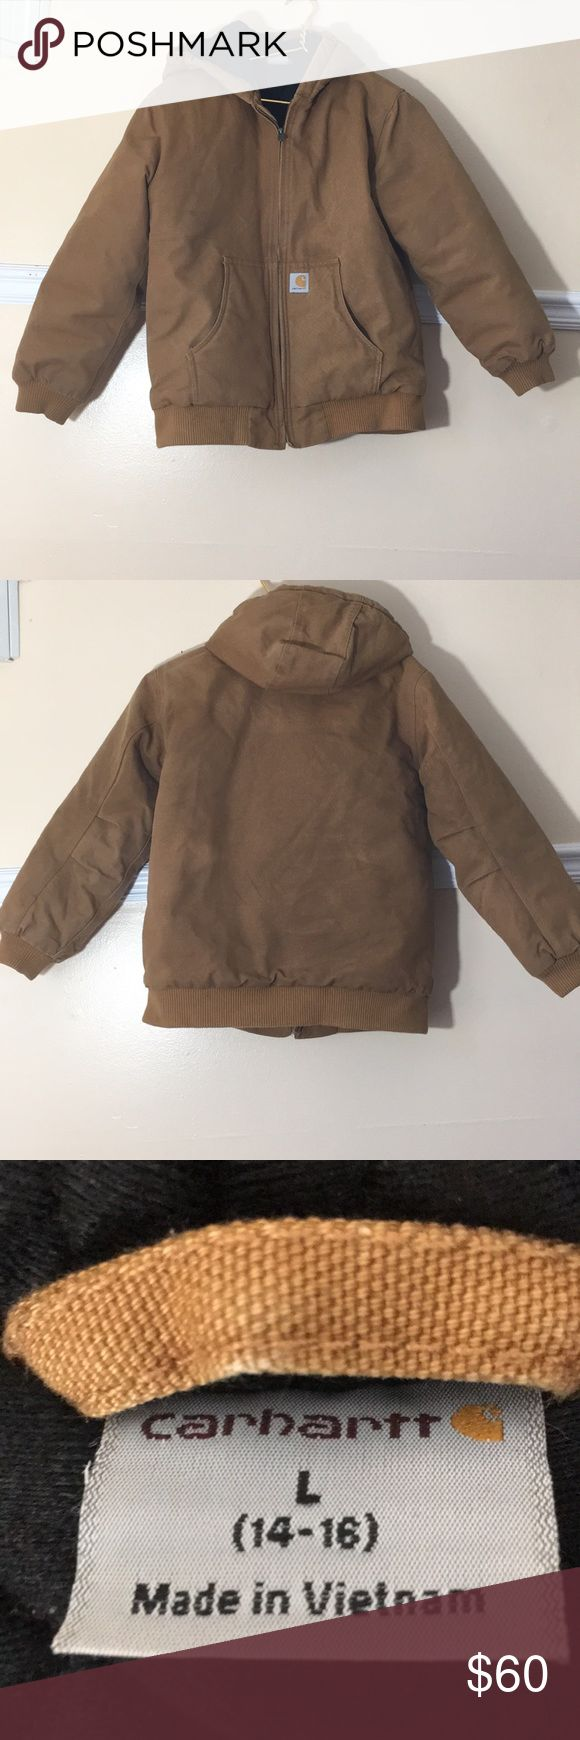 "Carhartt Active Jac ""Carhartt brown"" canvas jacket. Quilted lined. Is boys Large but fits a women's small. Only worn a handful of times. Machine washable. Like new Carhartt Jackets & Coats"